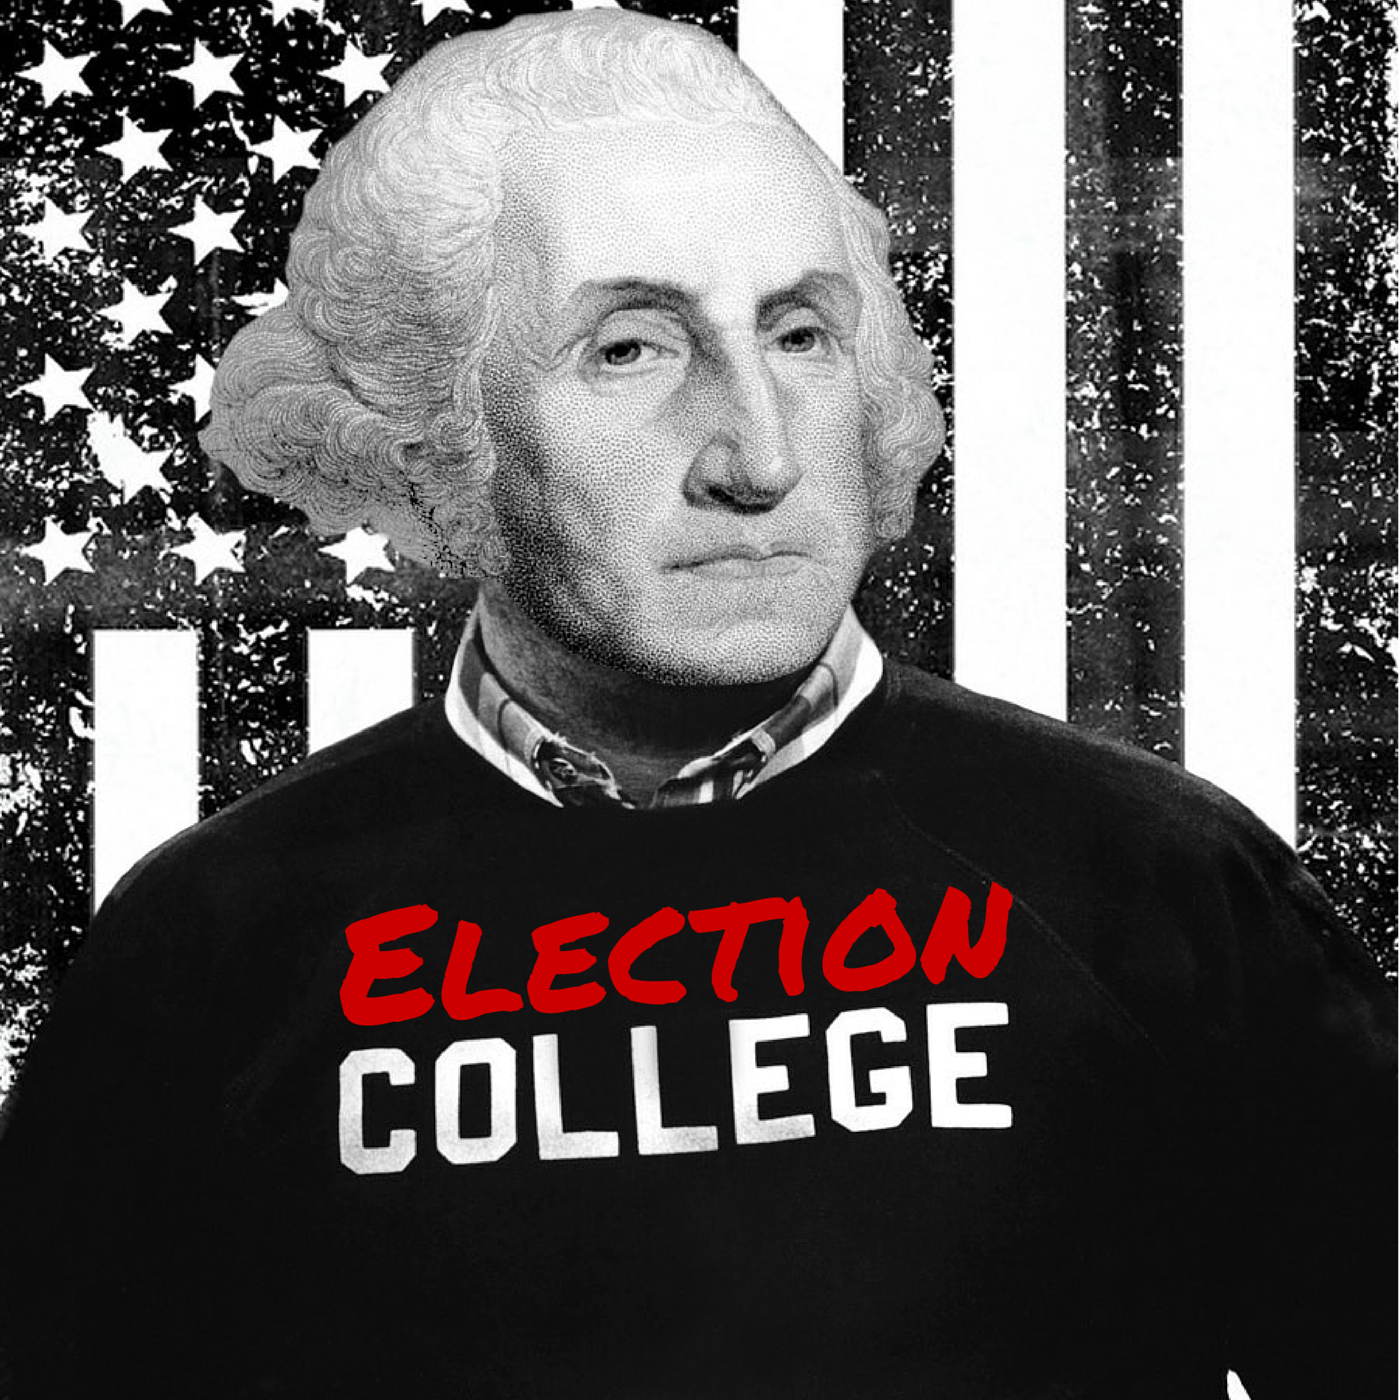 John Jay - Part 2 | Episode #162 | Election College: United States Presidential Election History